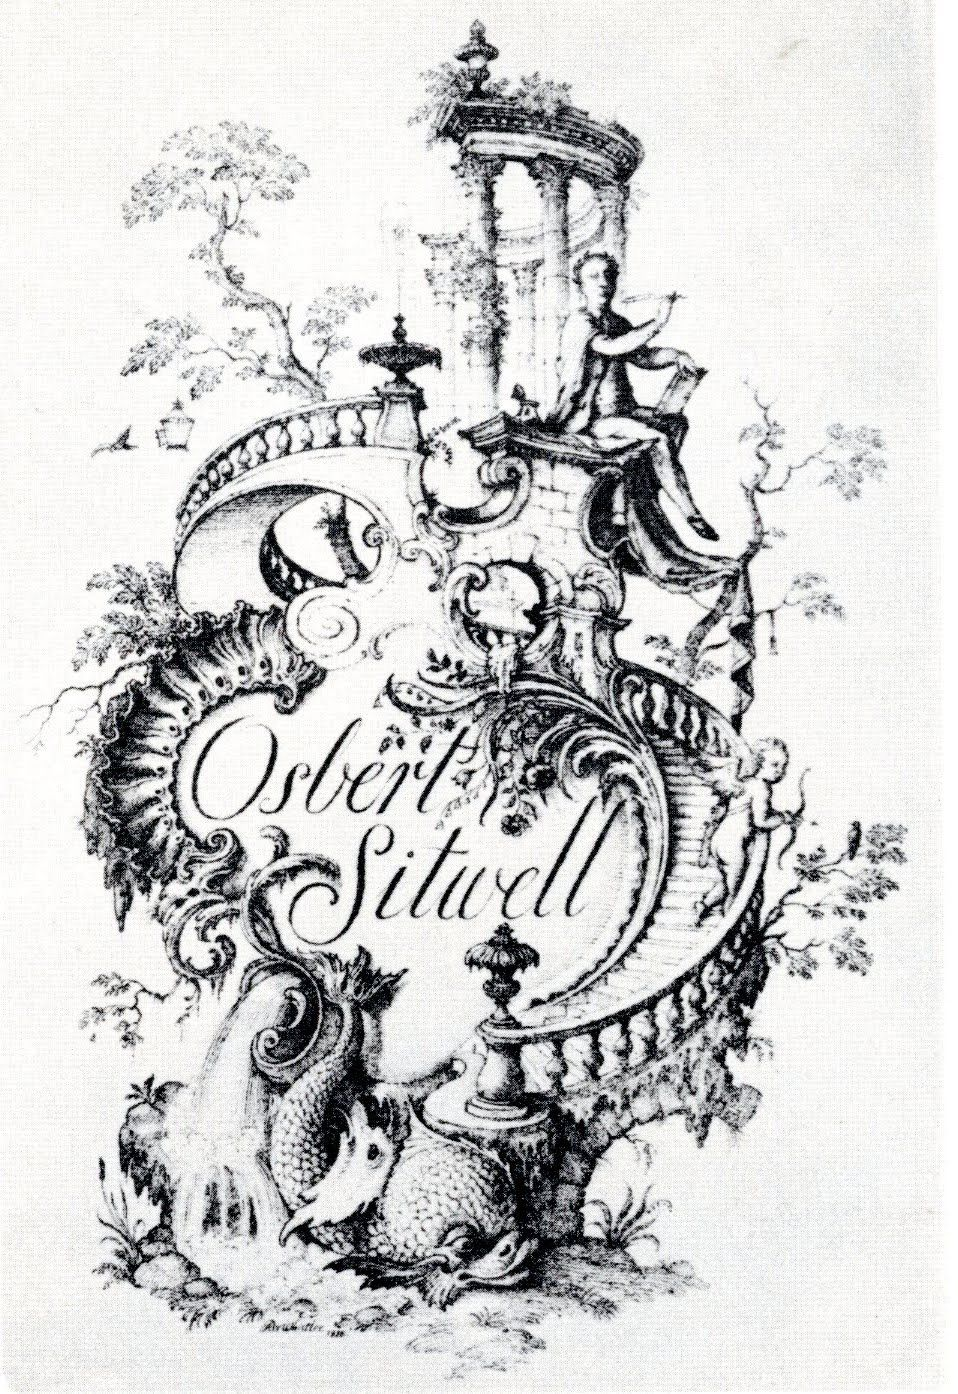 Bookplate Design for Osbert Sitwell by Rex Whistler in